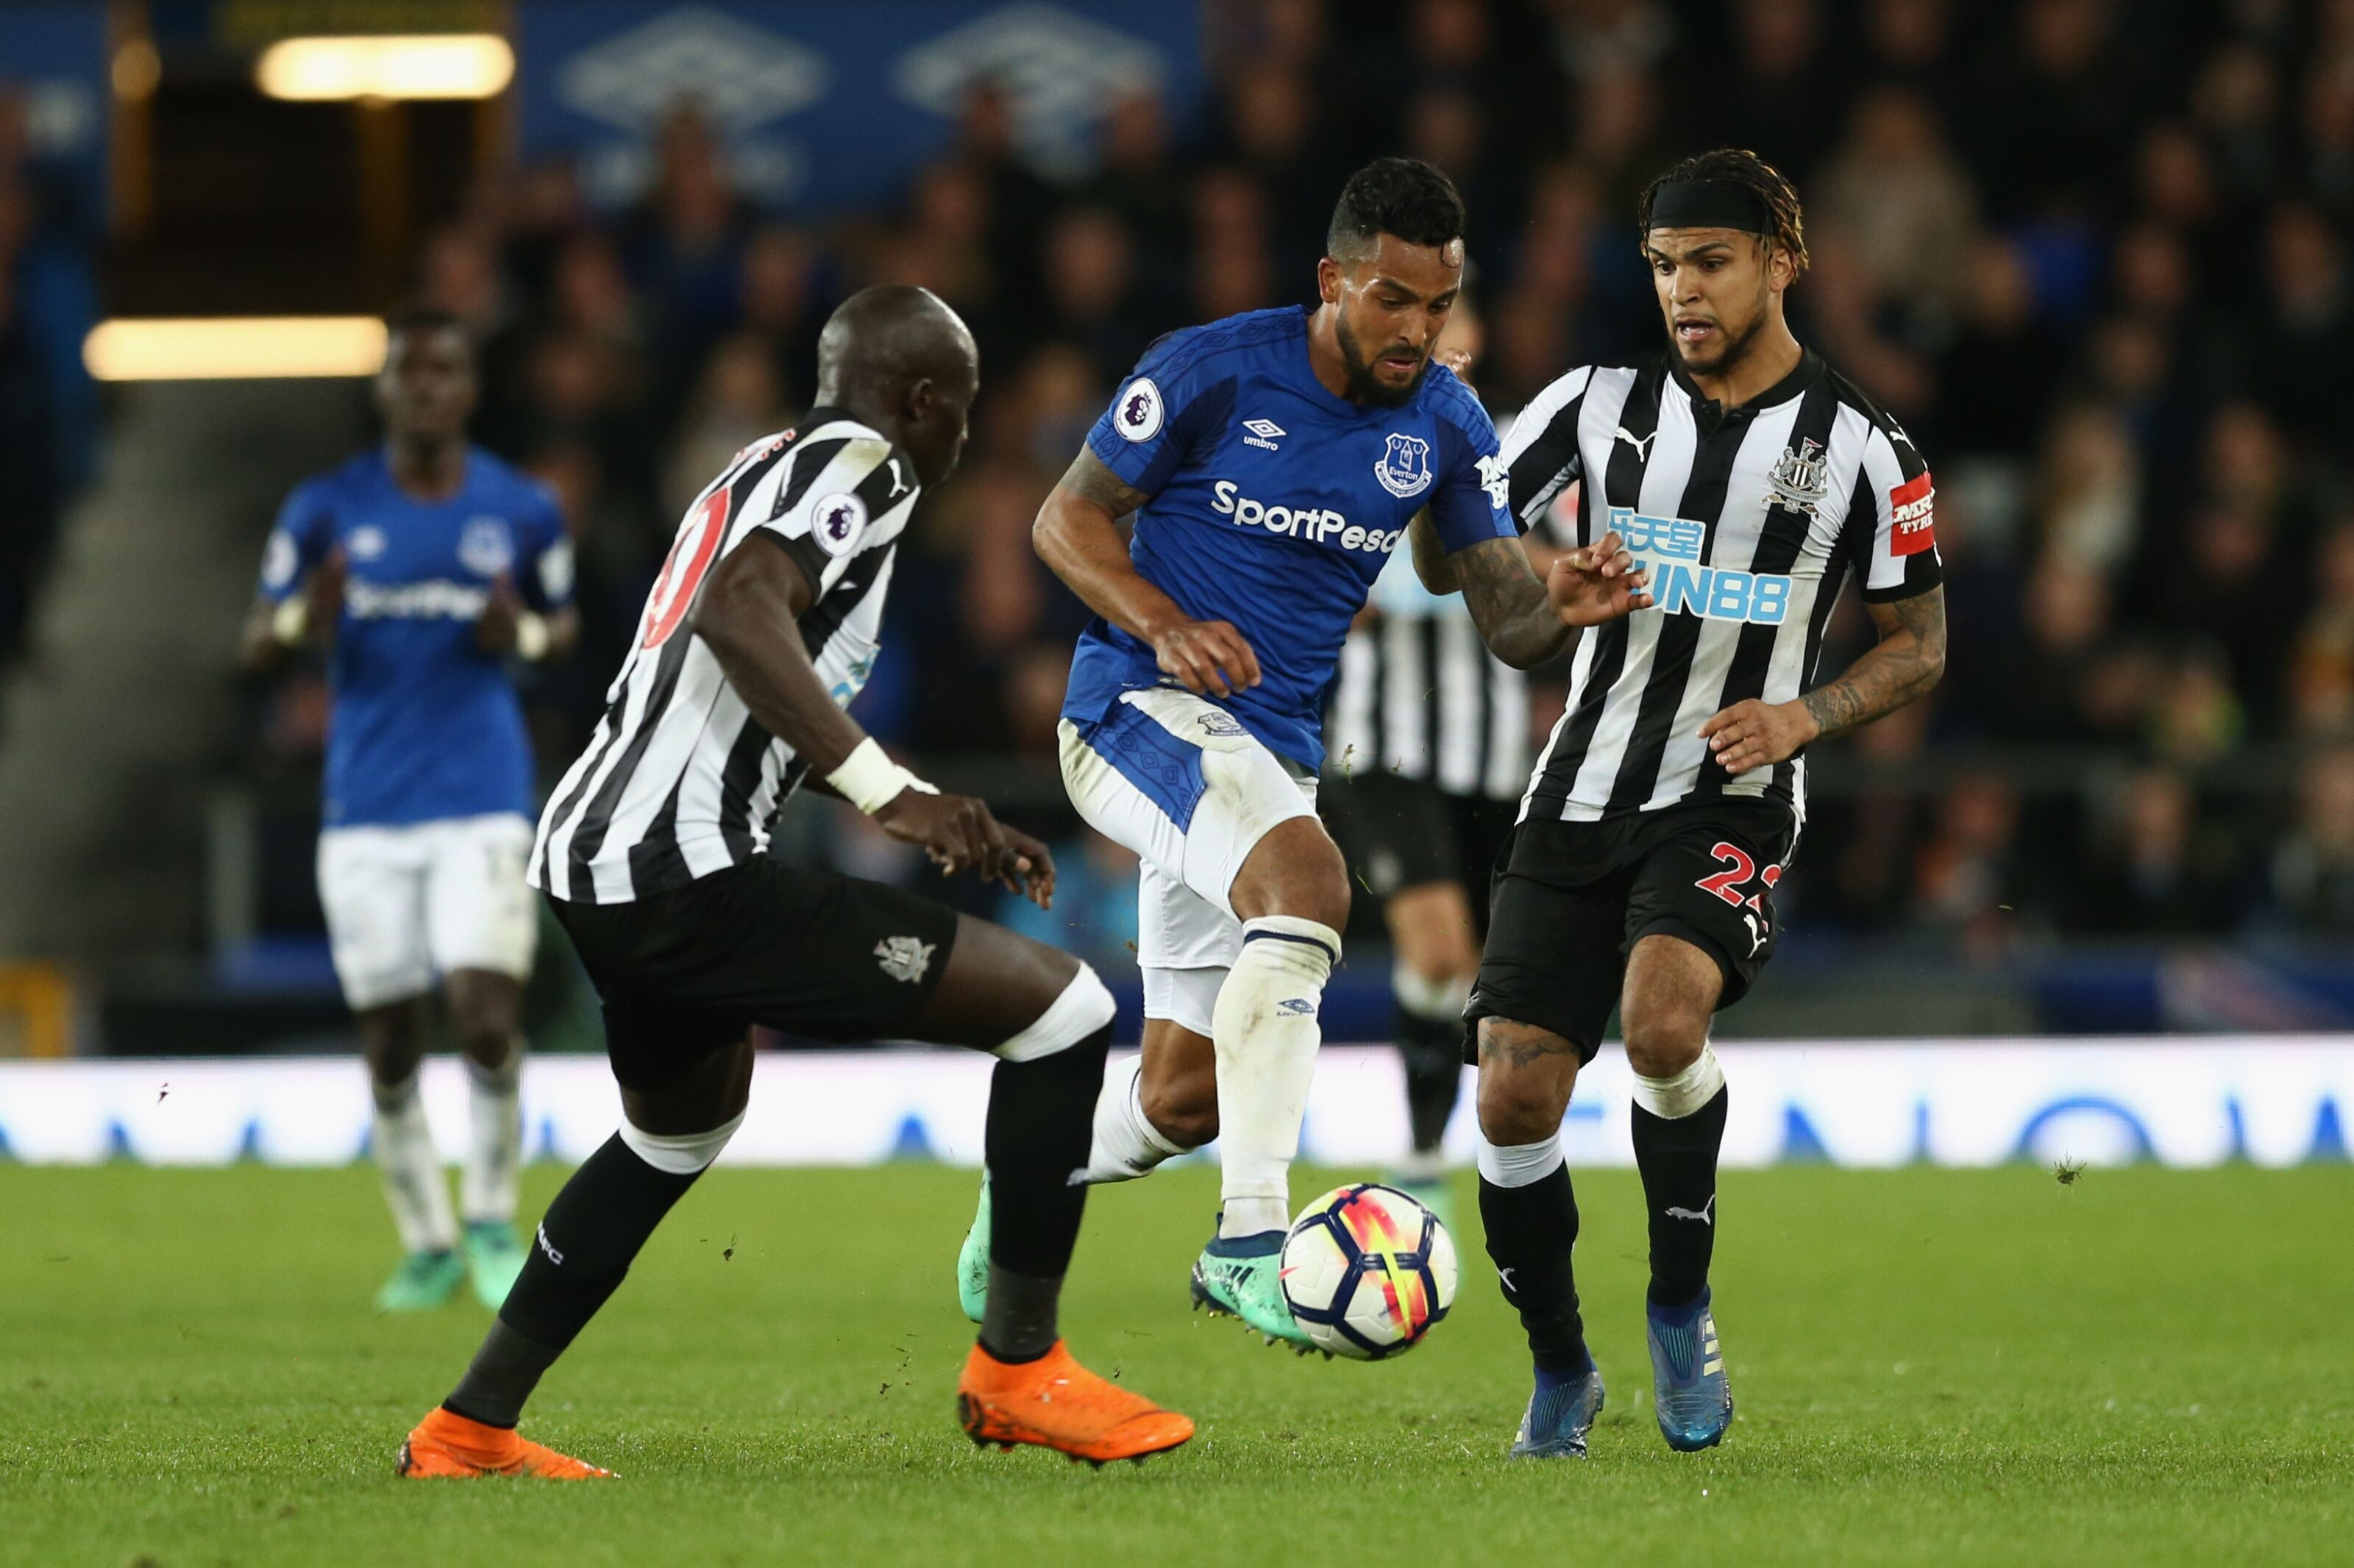 Everton 1 Newcastle United 0: post-match from Goodison Park